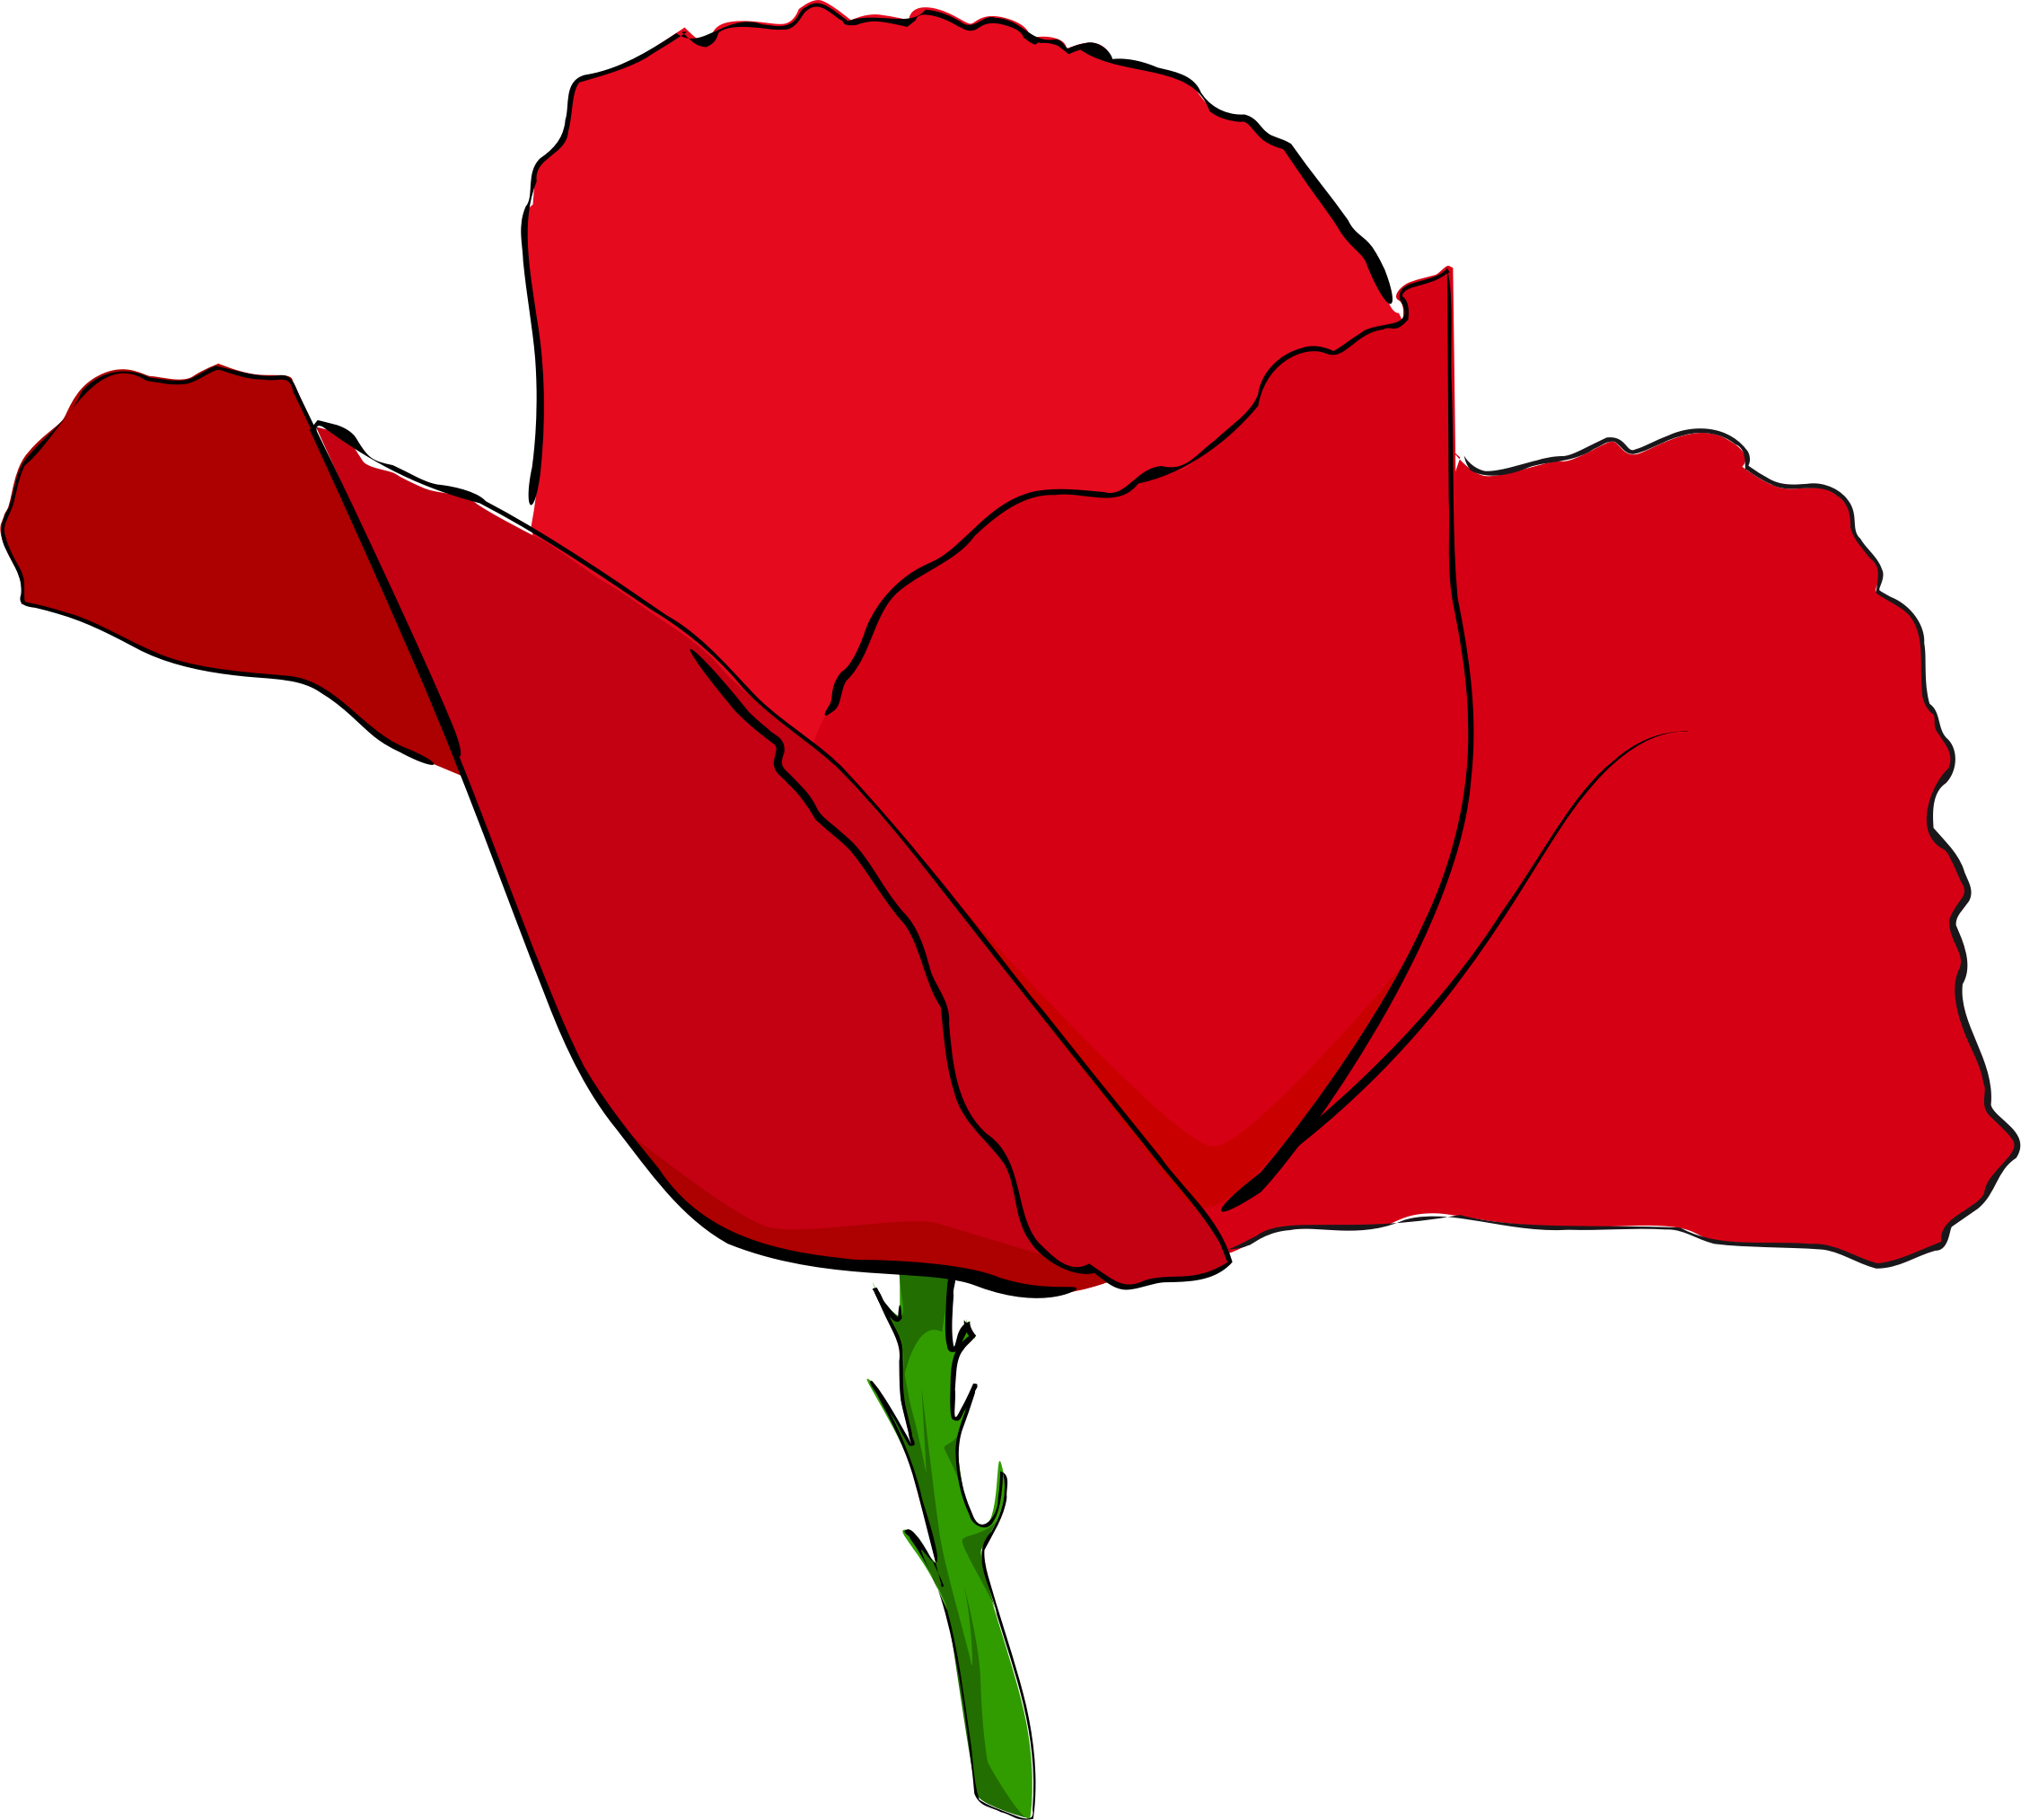 Coquelicot rouge red big. Poppy clipart small